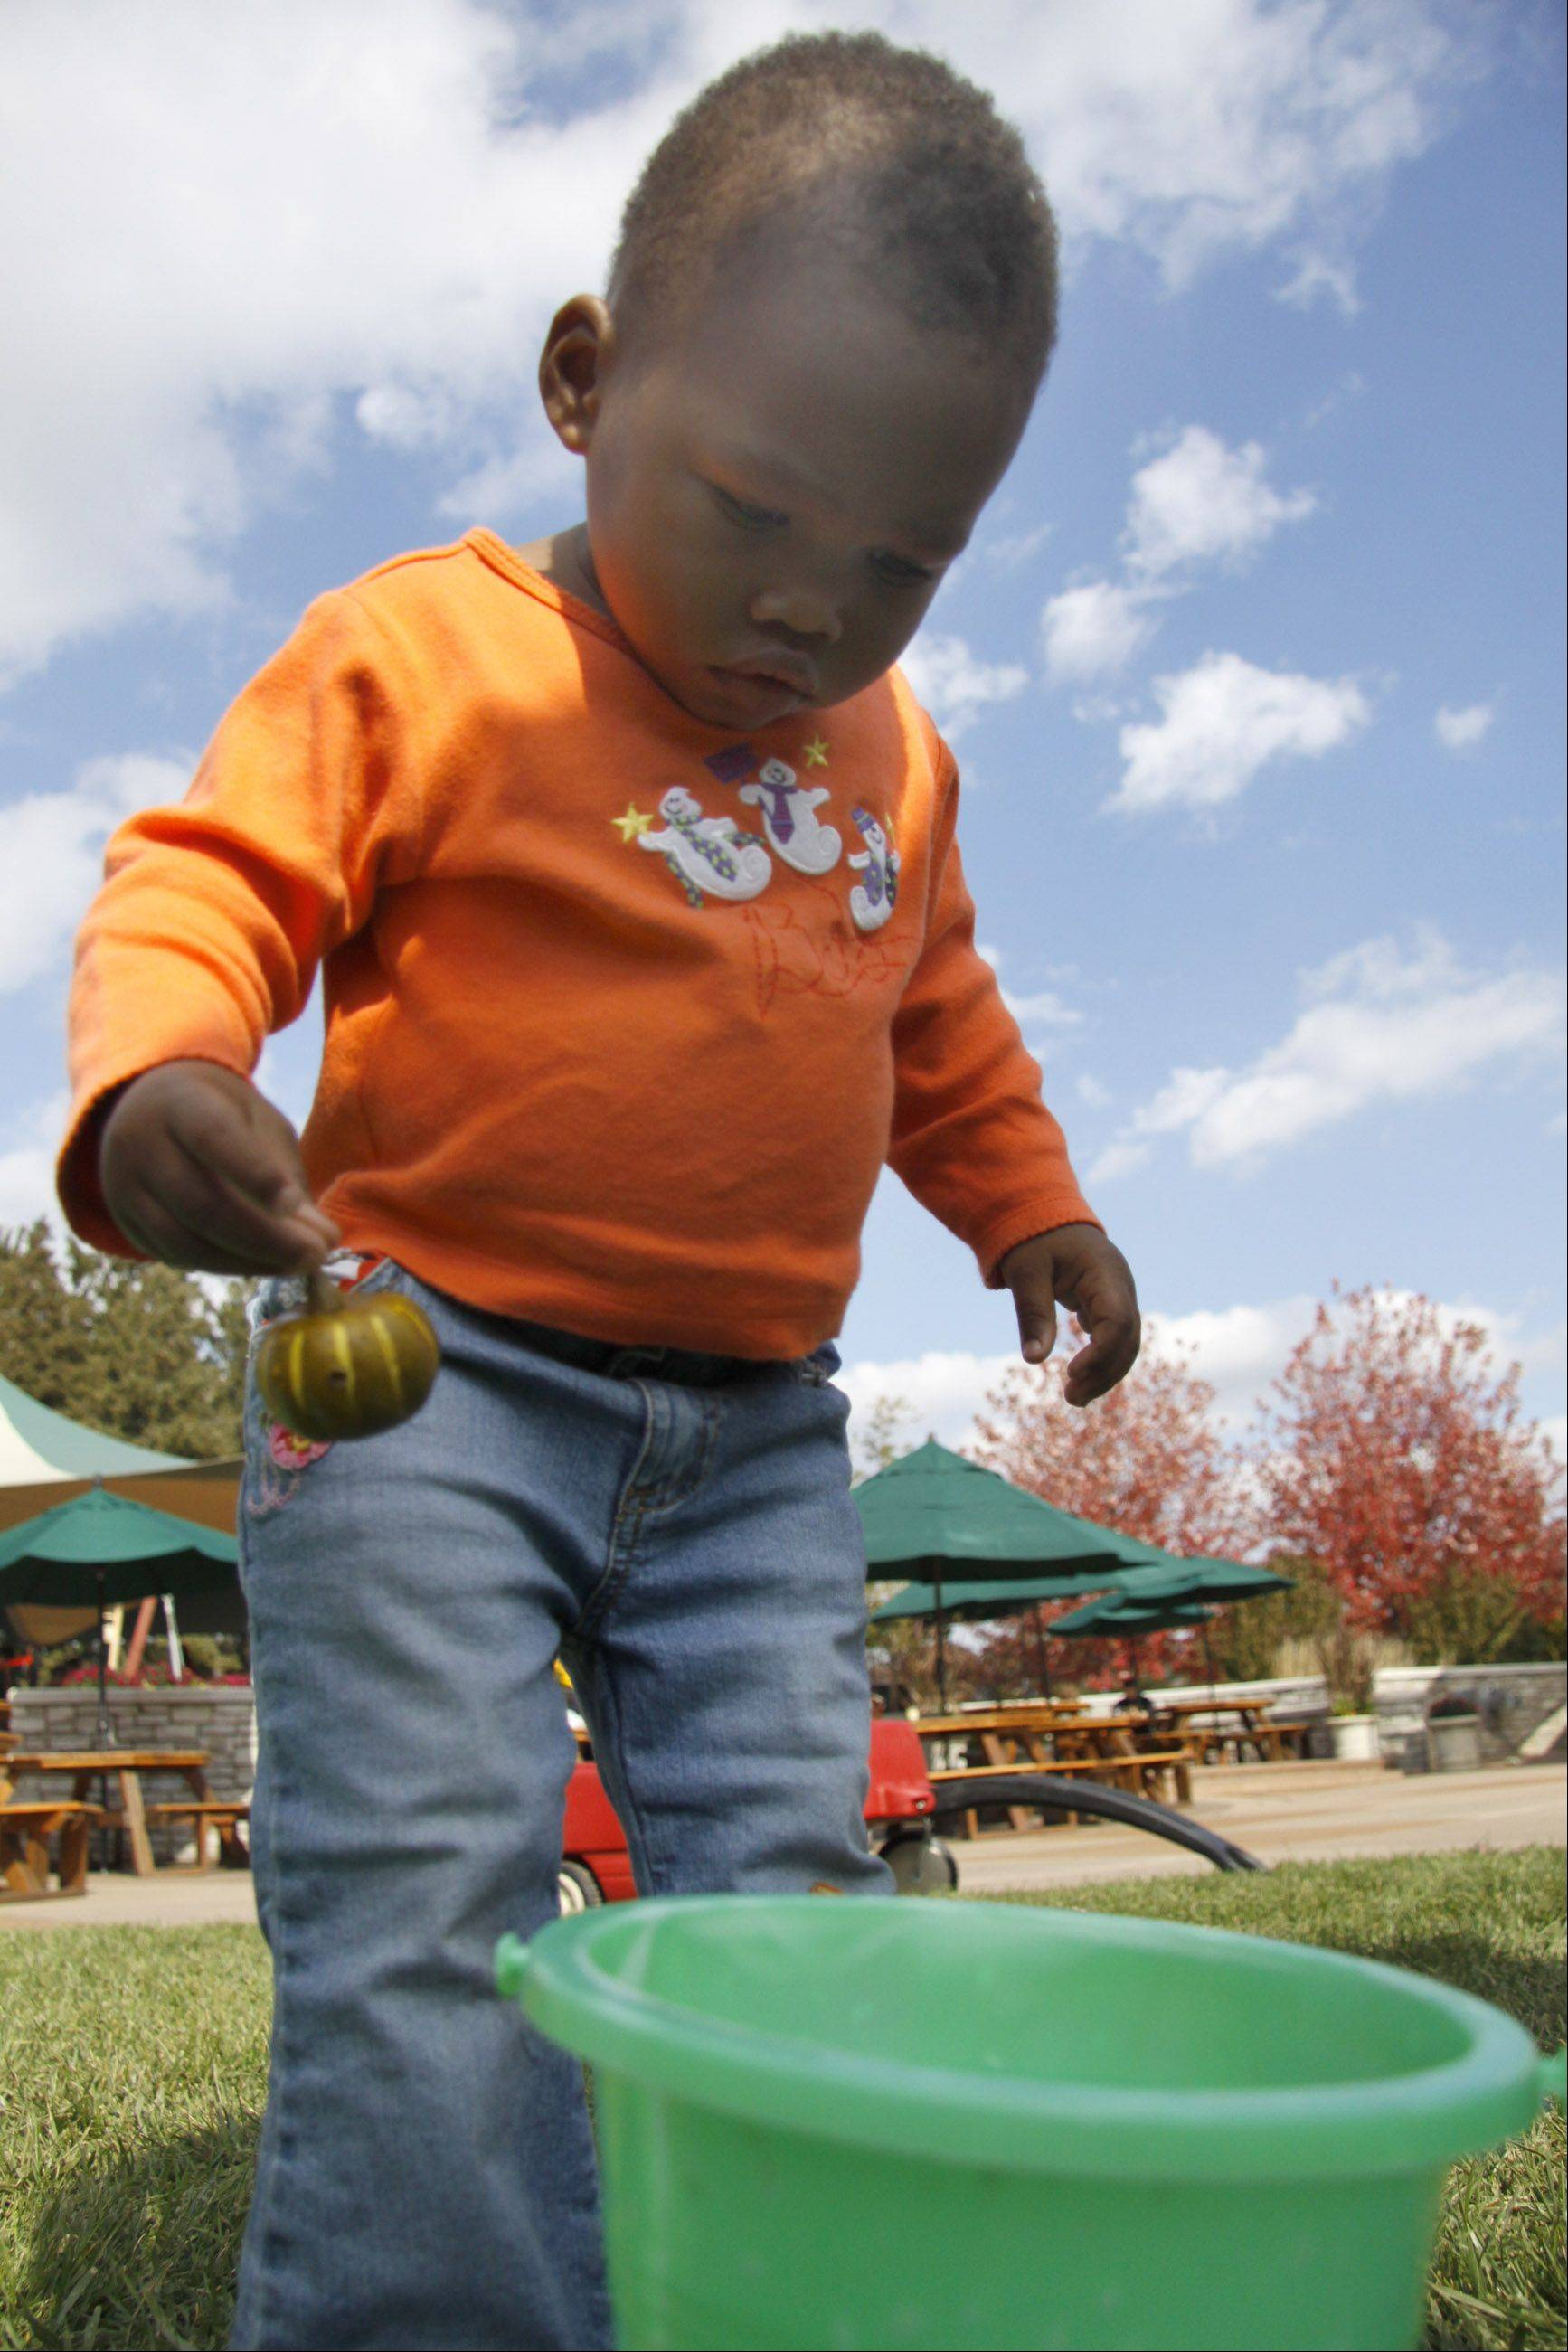 The Morton Arboretum's Fall Color Festival features all sorts of games and activities for kids.